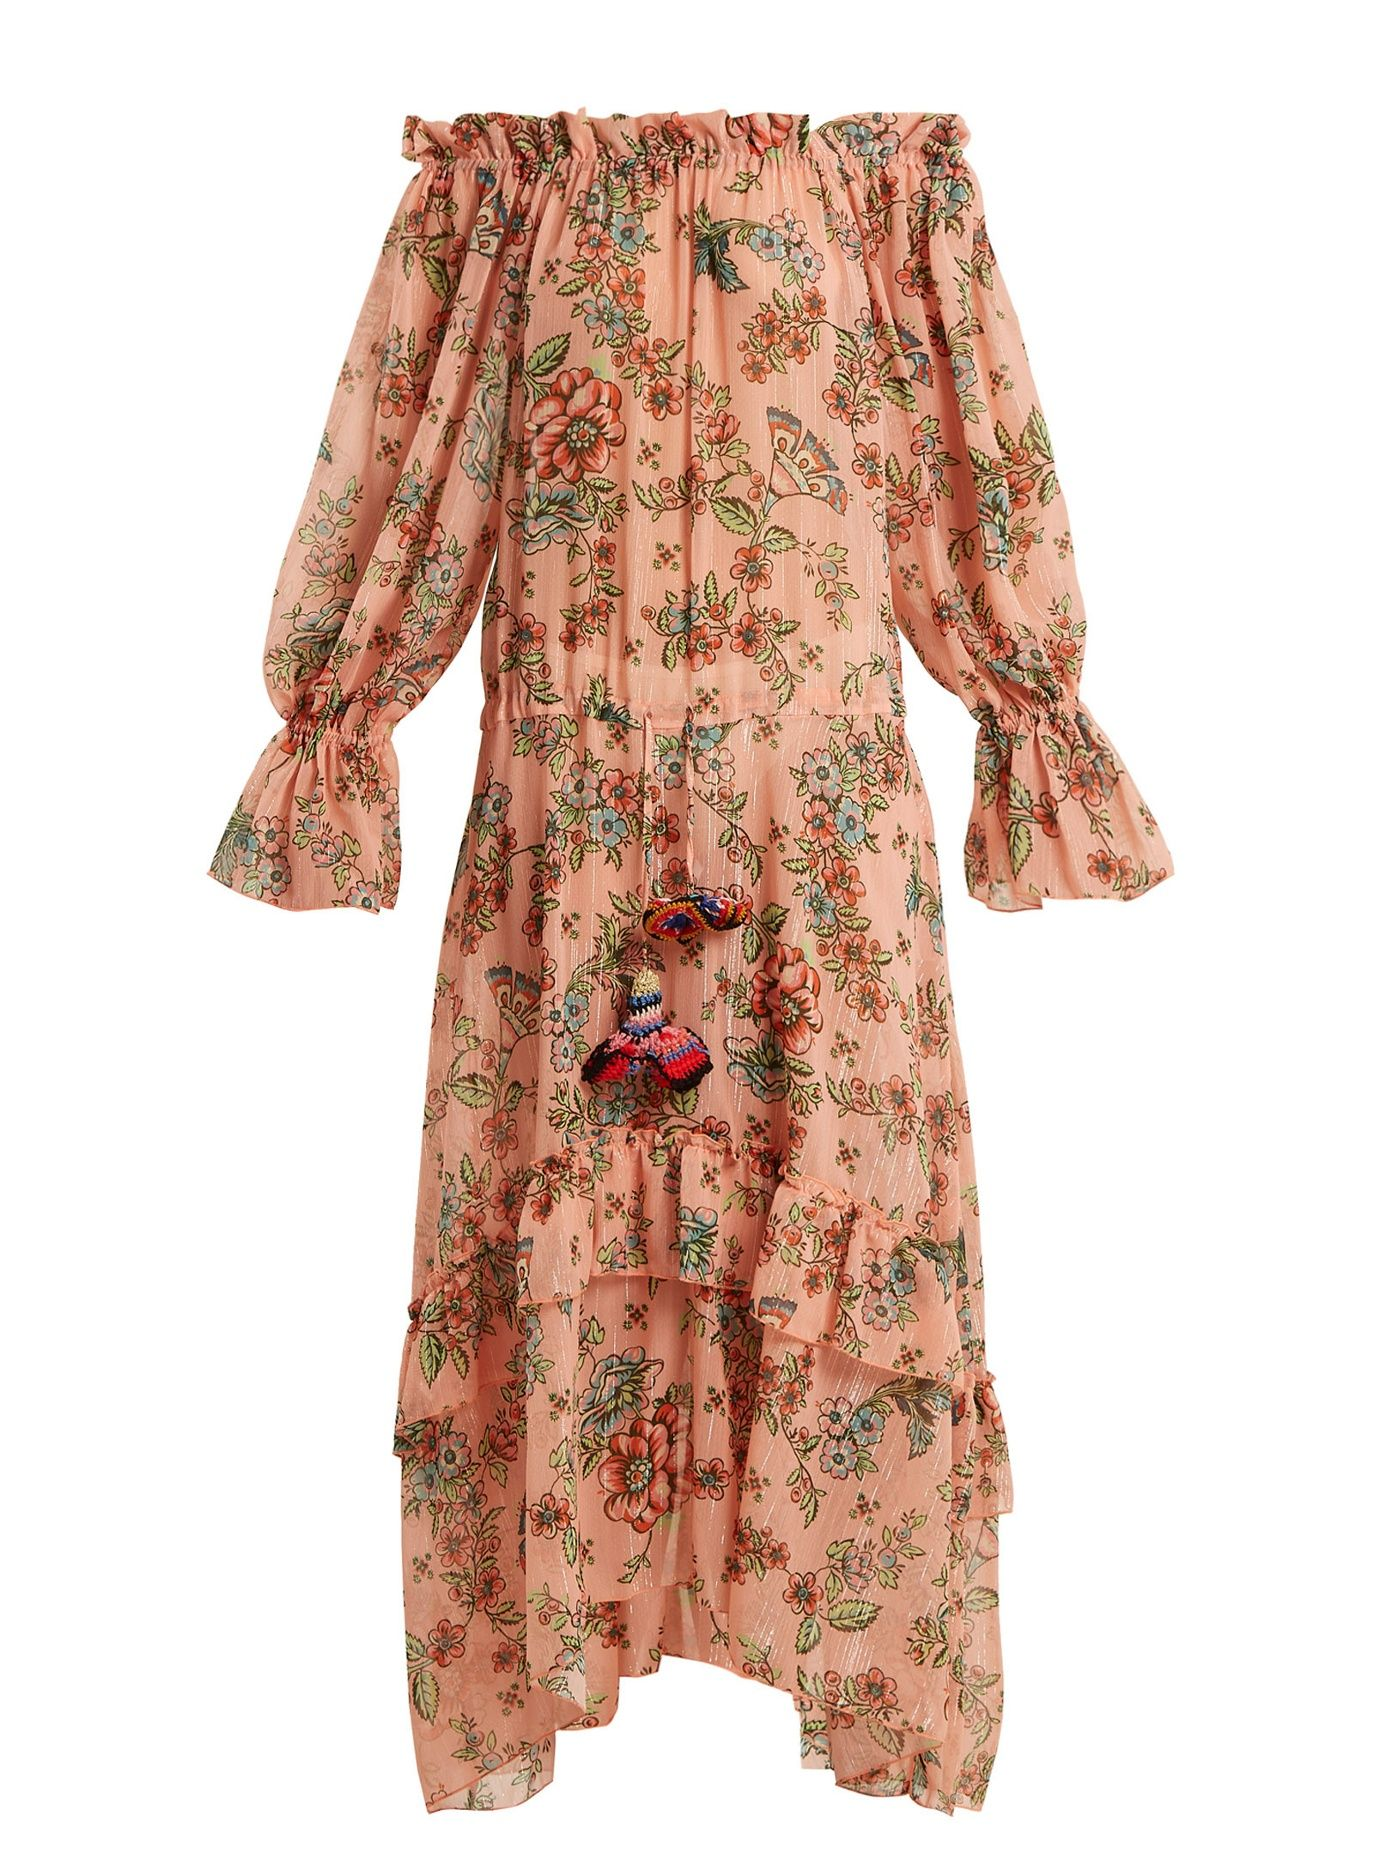 Clearance Pay With Paypal Sofia off-the-shoulder floral-print dress Anjuna Cheap Prices Authentic Pre Order Cheap Price Outlet Footlocker Pictures Yq3OUxb